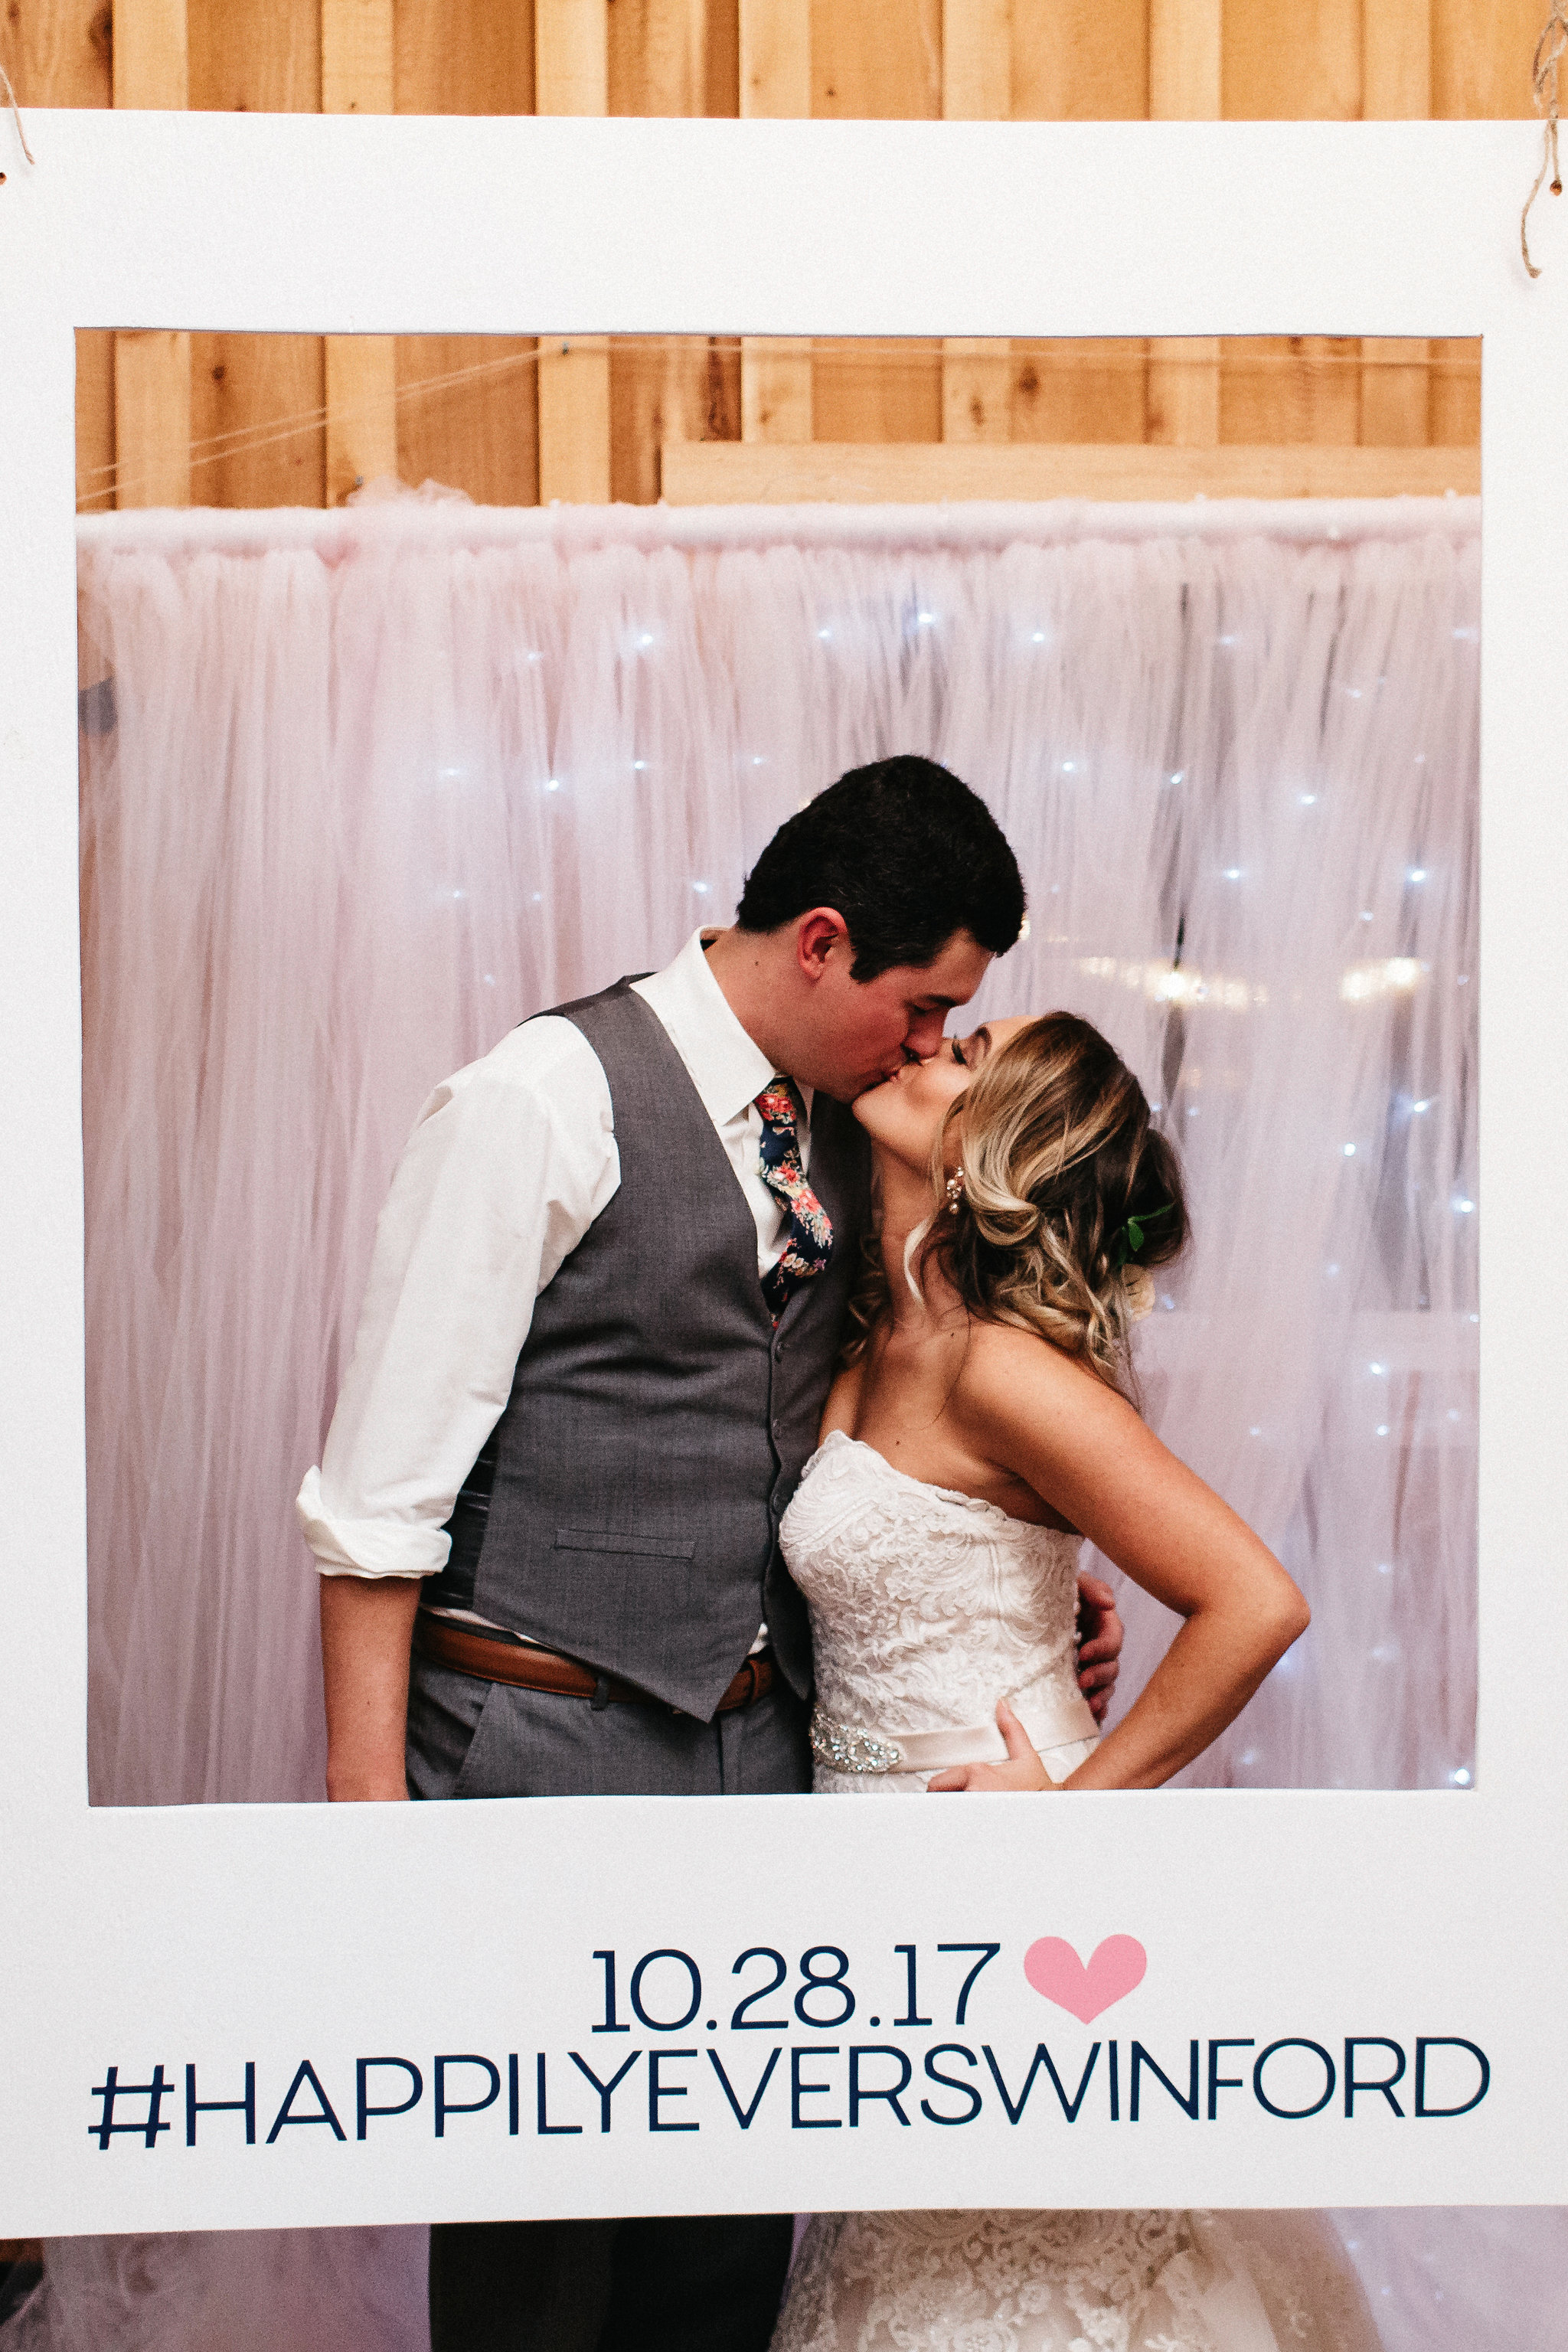 Ashley&NathanMarried2017-11-10at19.26.56PM66.jpg